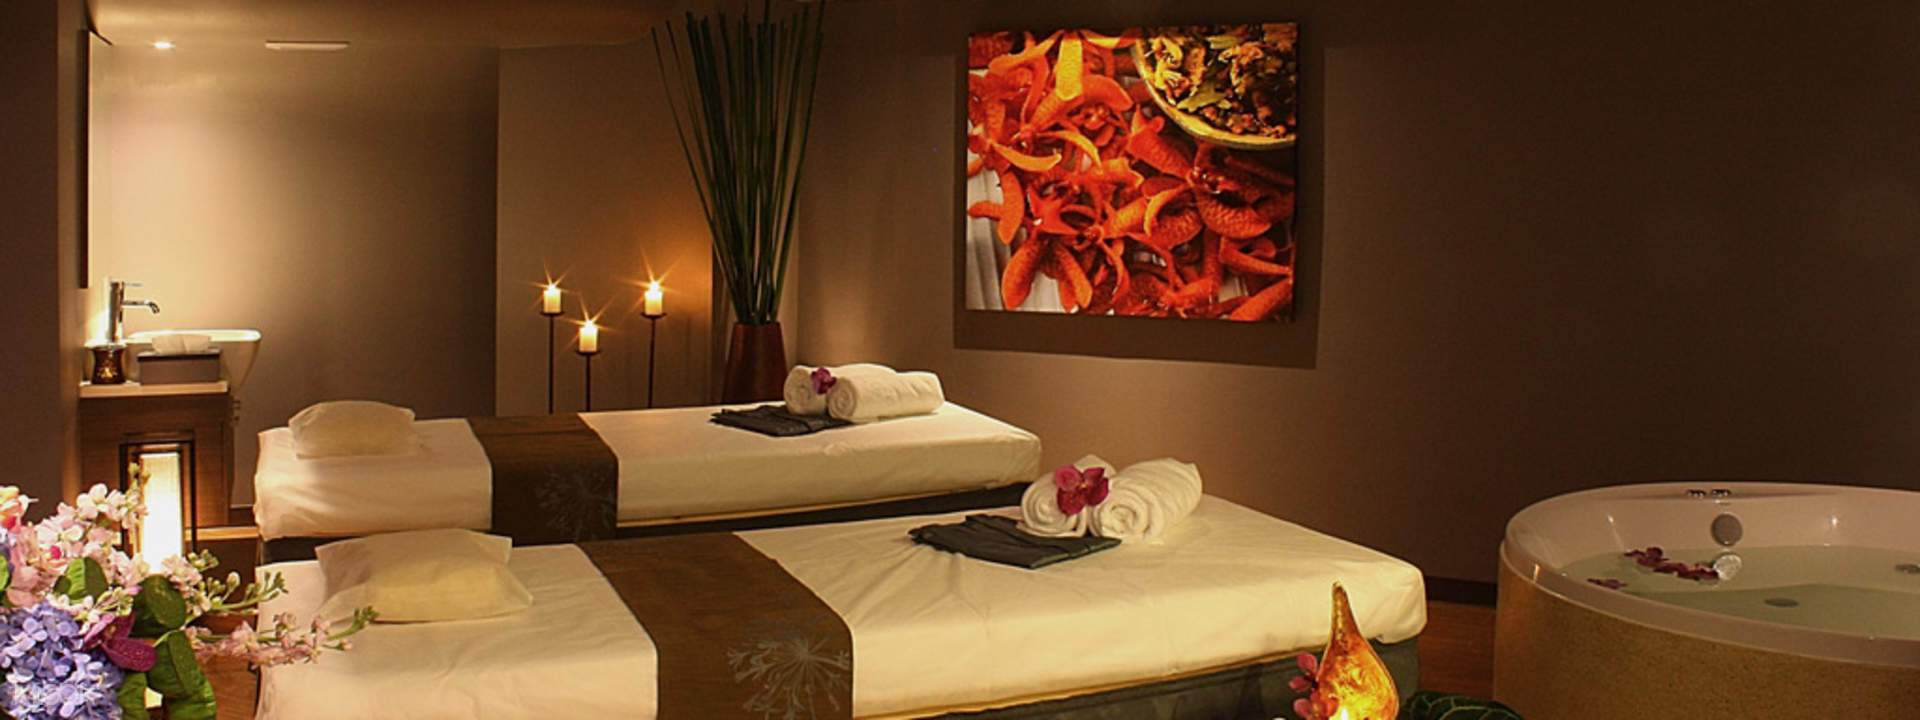 Let's Relax Spa Treatments in Bangkok - Klook